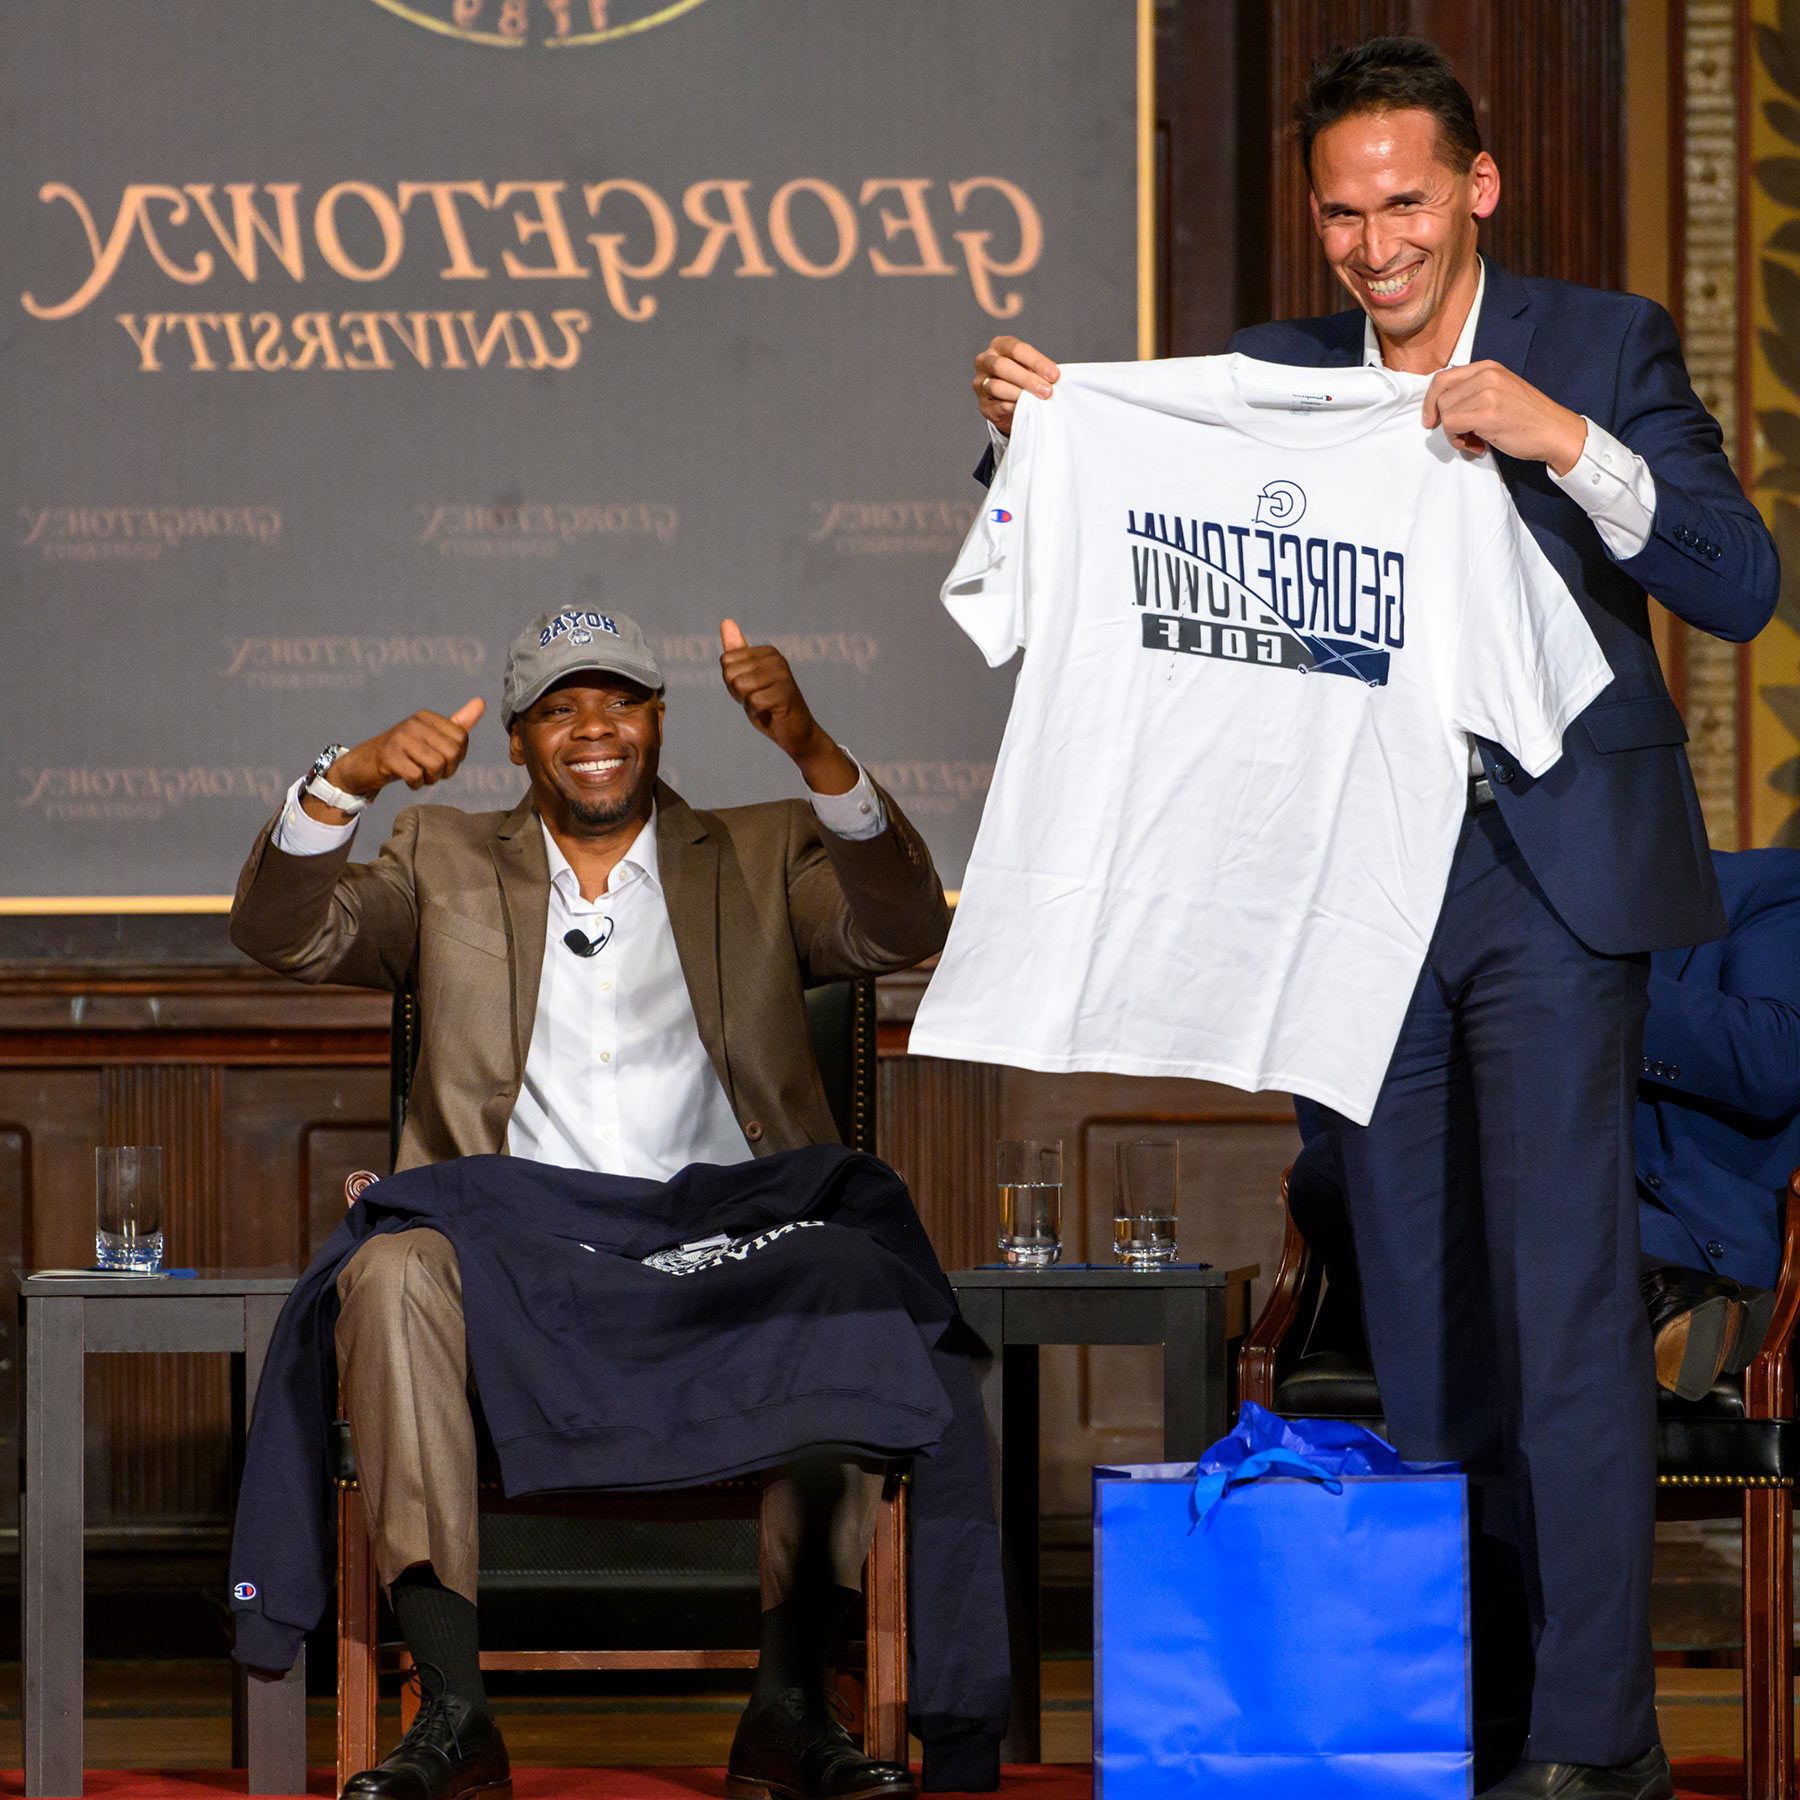 Professor Marc Howard stands on stage in Gaston Hall, presenting a 365体育备用网址 golf t-shirt to Valentino Dixon.